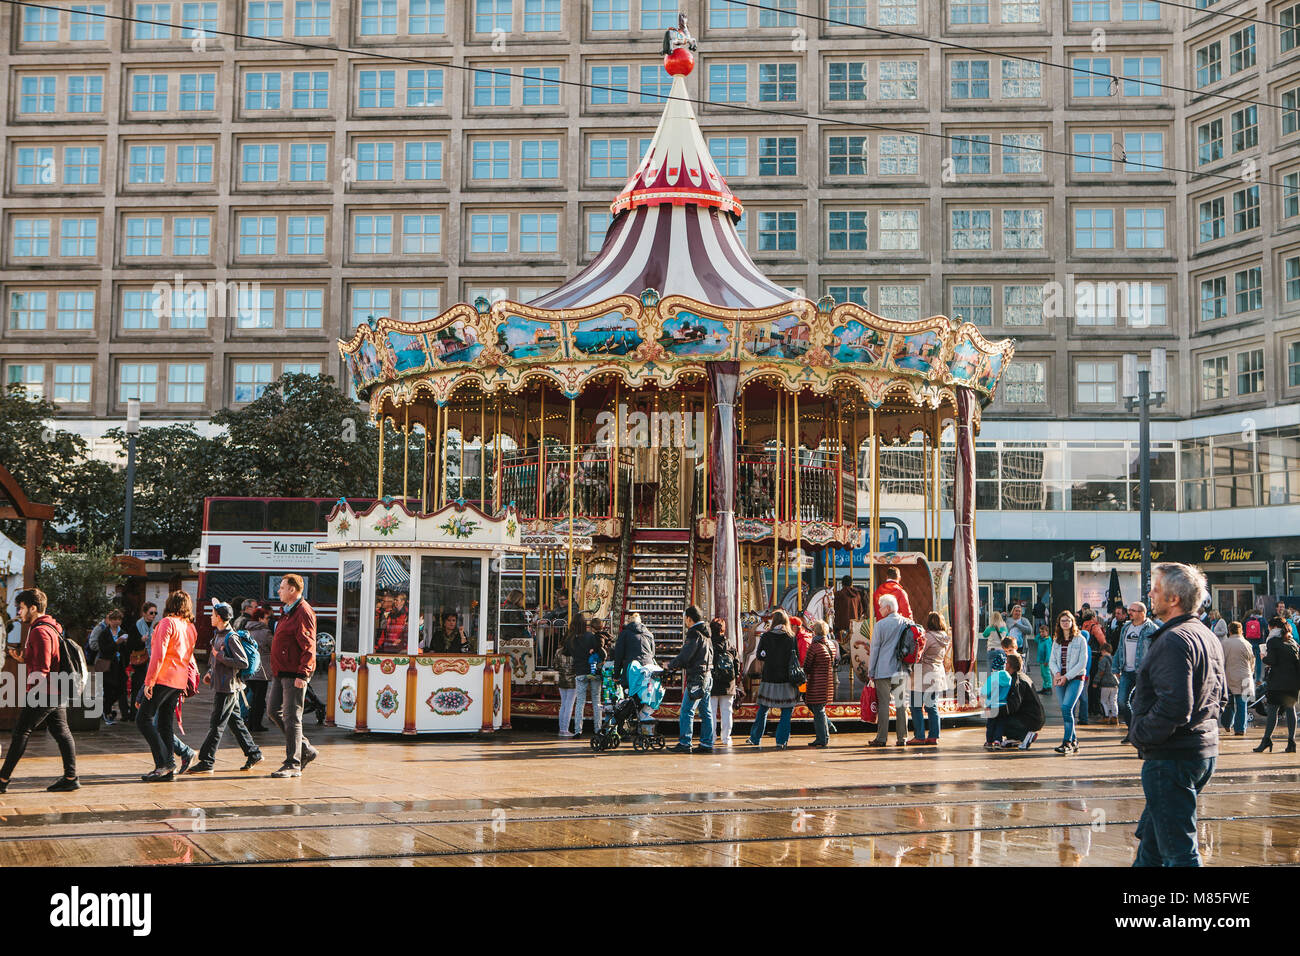 Carousel and other entertainment for people on the Alexanderplatz square. Local residents and tourists are walking - Stock Photo